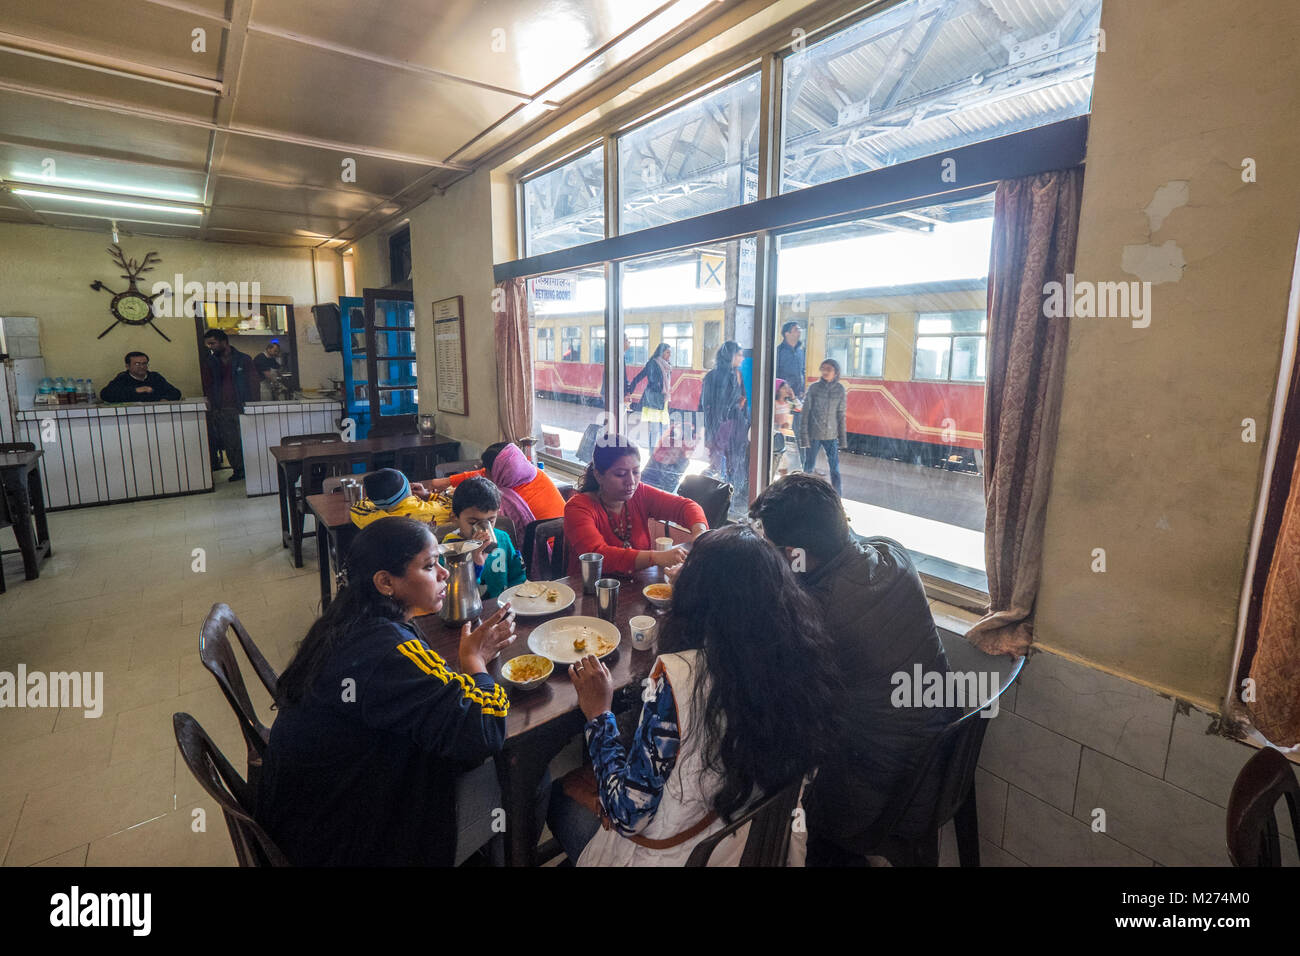 An Indian family eating at  the canteen at Shimla railway station, India - Stock Image